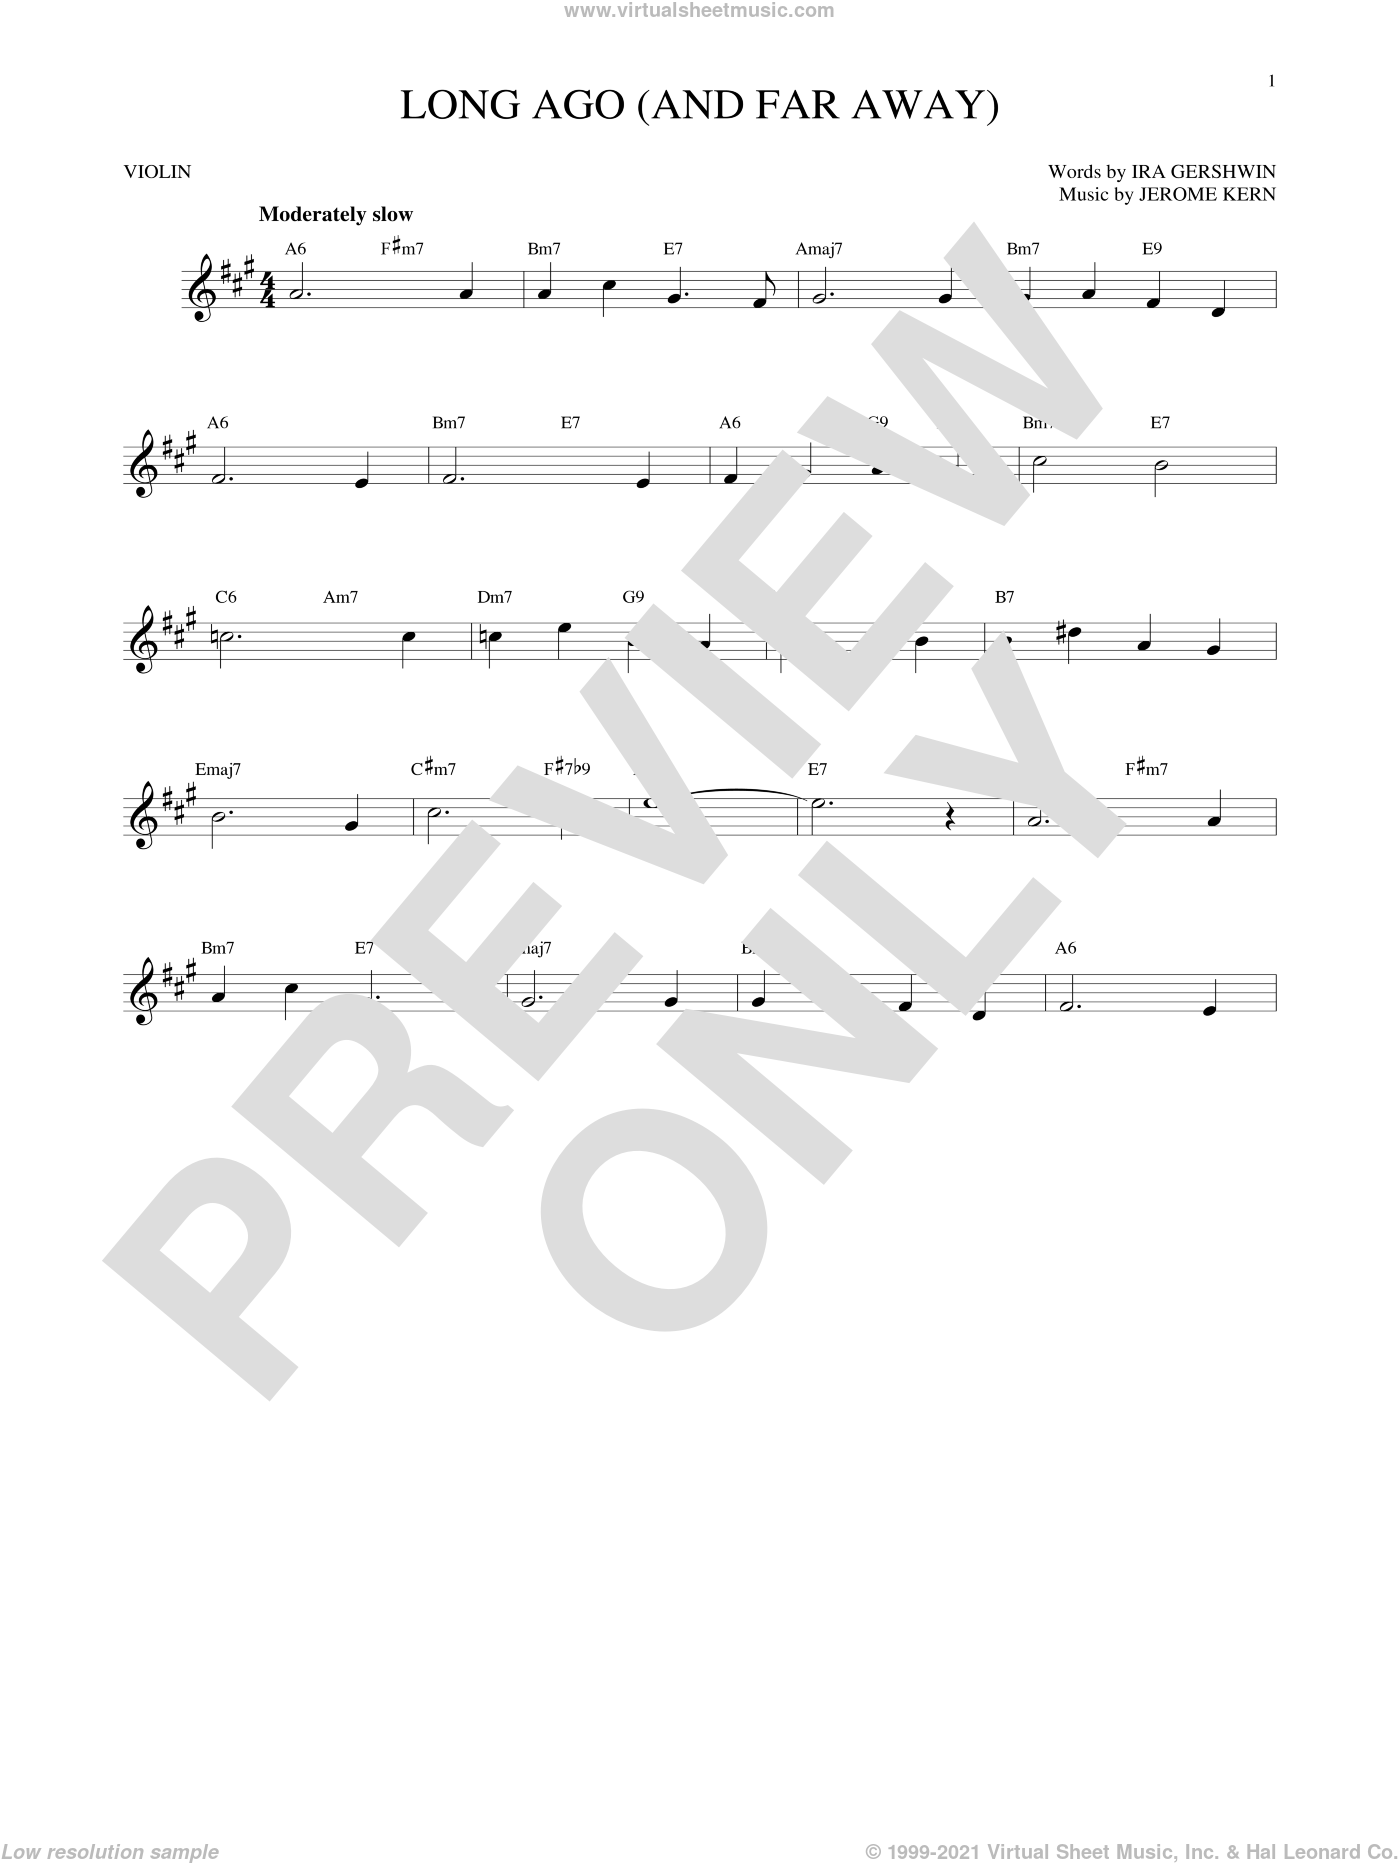 Long Ago (And Far Away) sheet music for violin solo by Ira Gershwin and Jerome Kern, intermediate skill level